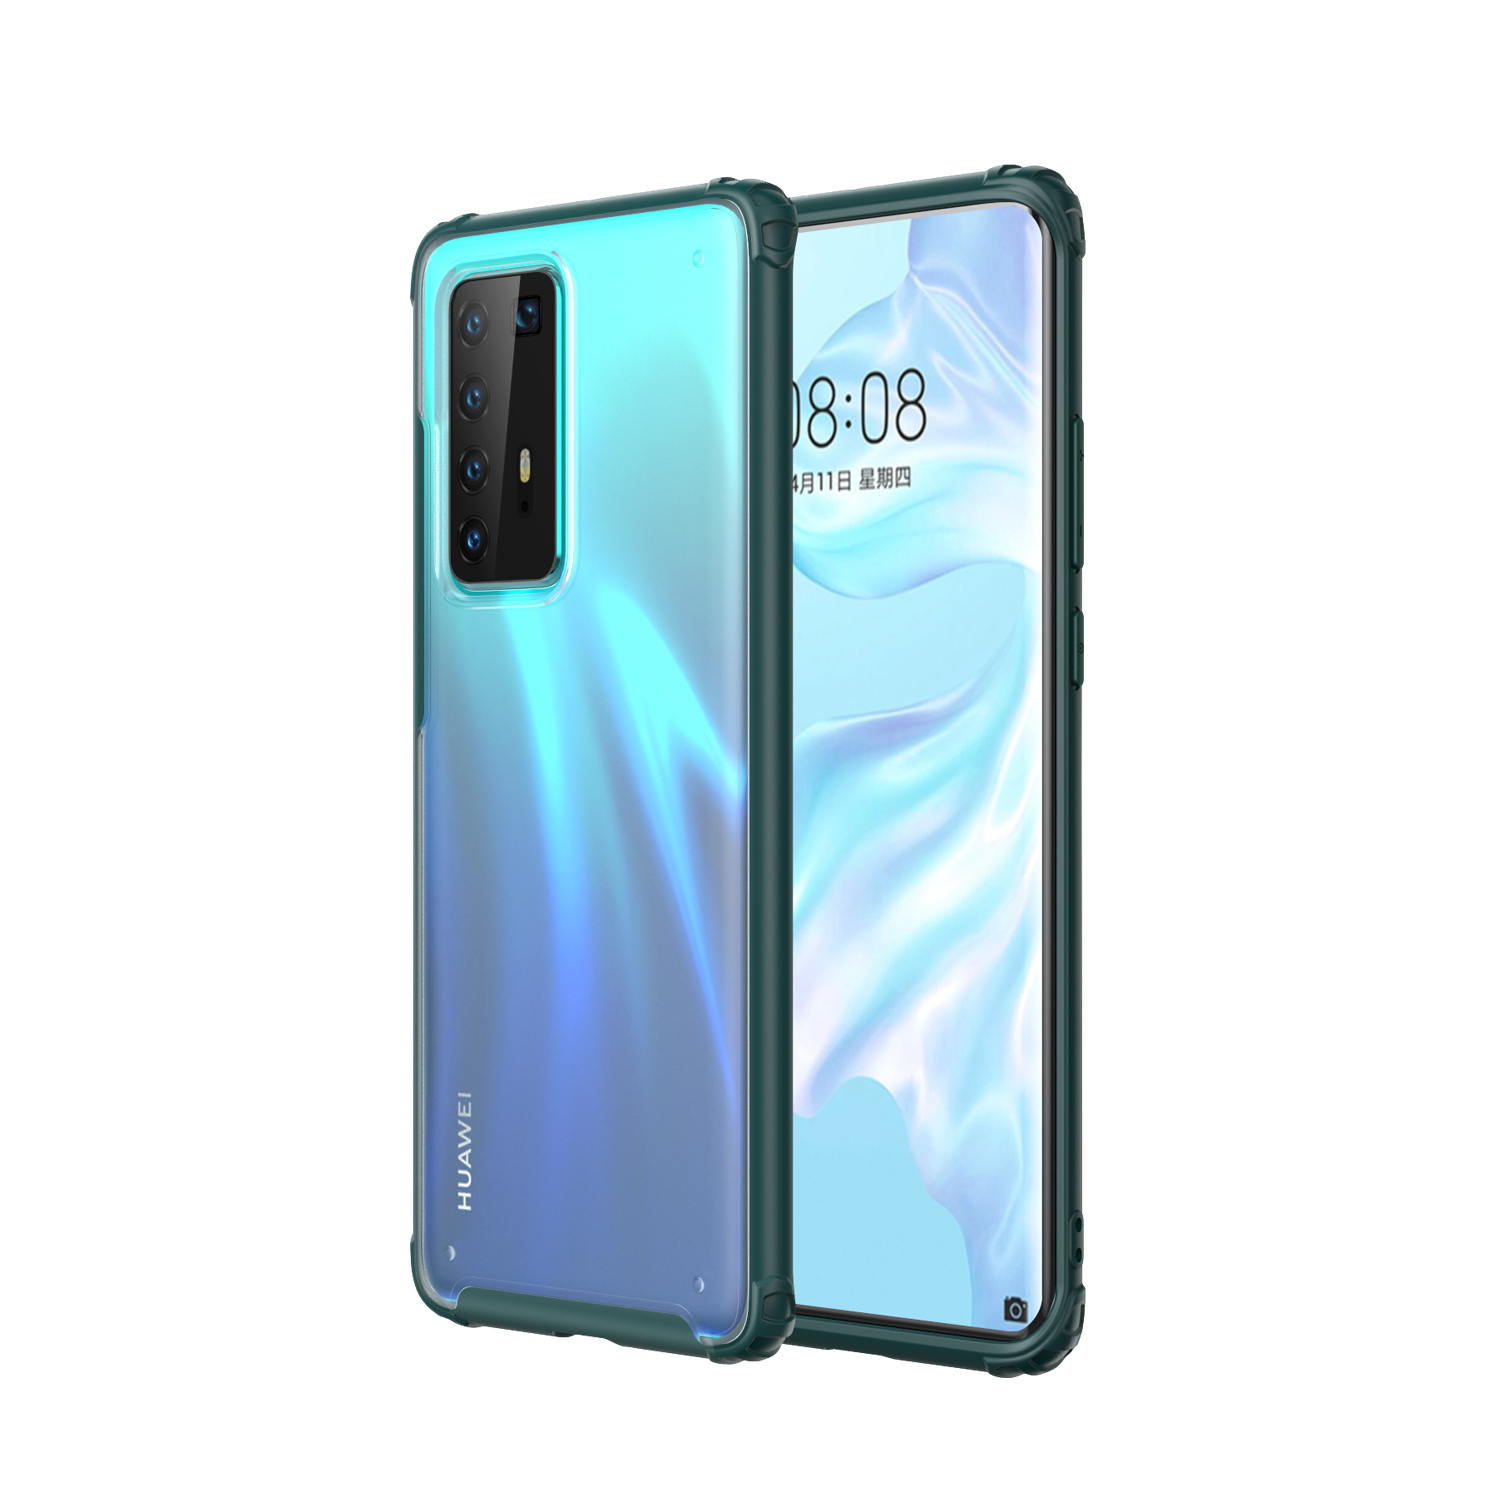 For HUAWEI P40 Pro Case PC Matte bottom TPU Soft Edge Cover Shockproof Mobile Phone Cover Dark green